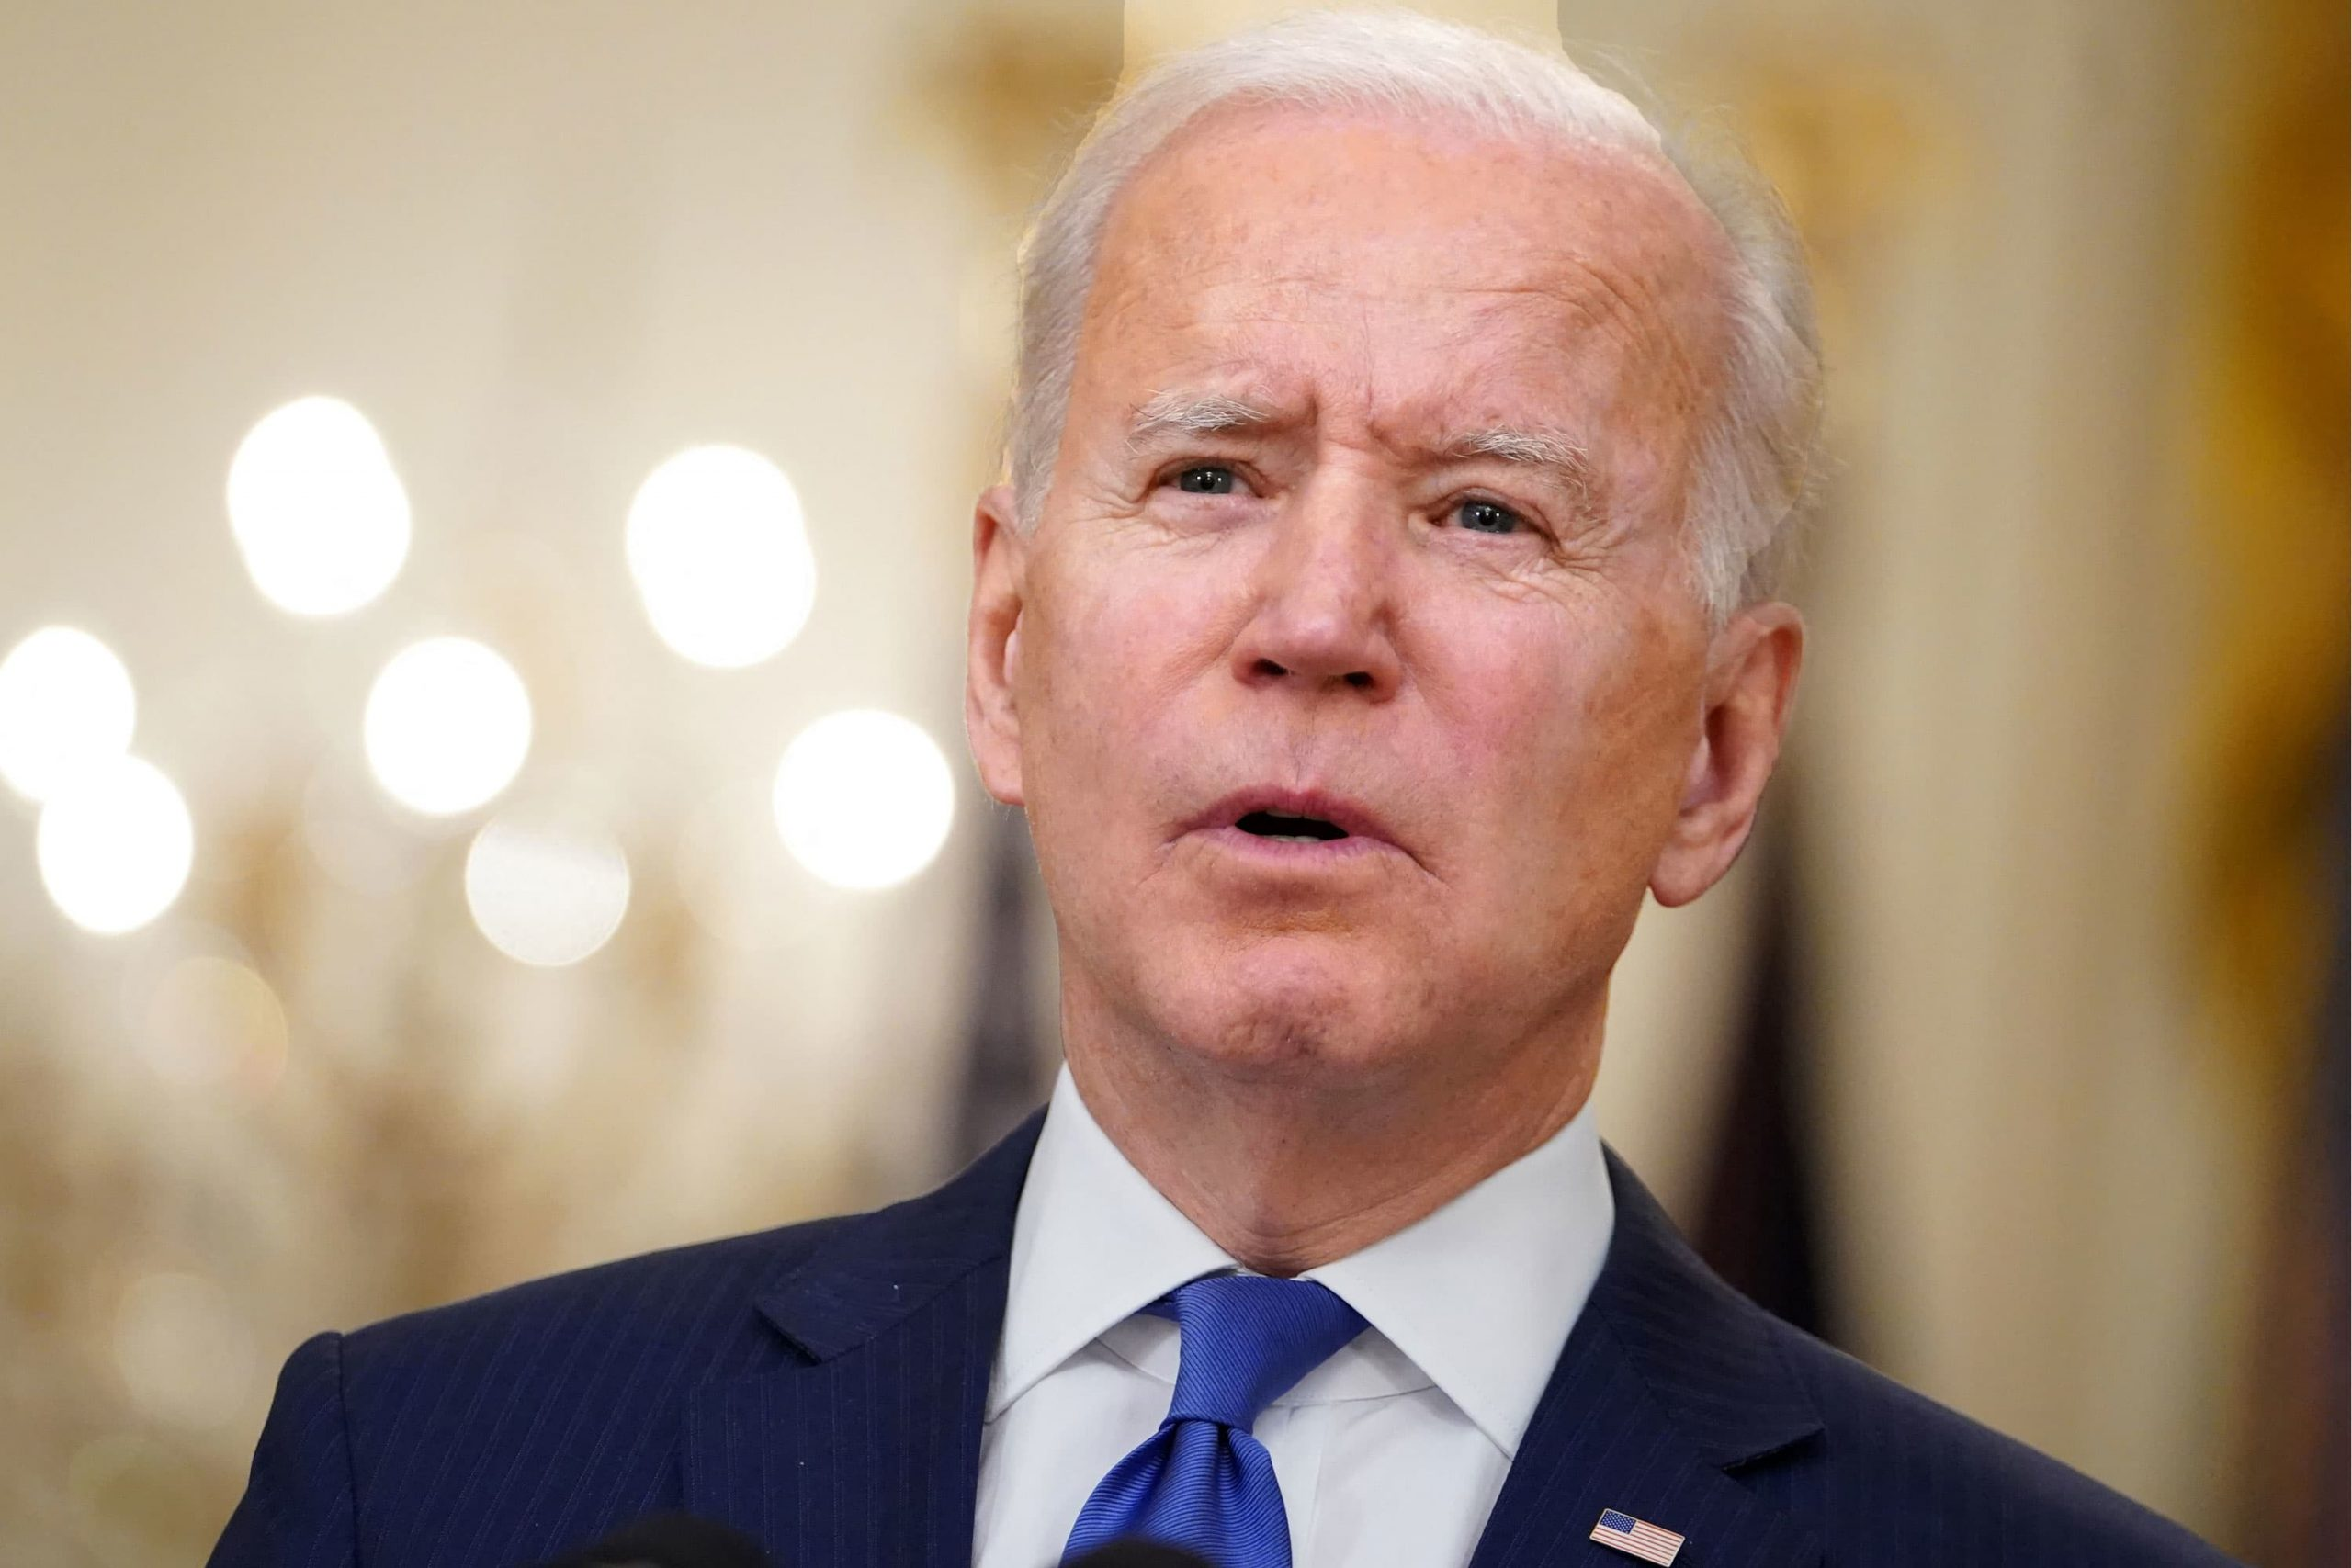 Biden is loading up his administration with Big Tech's most prominent critics